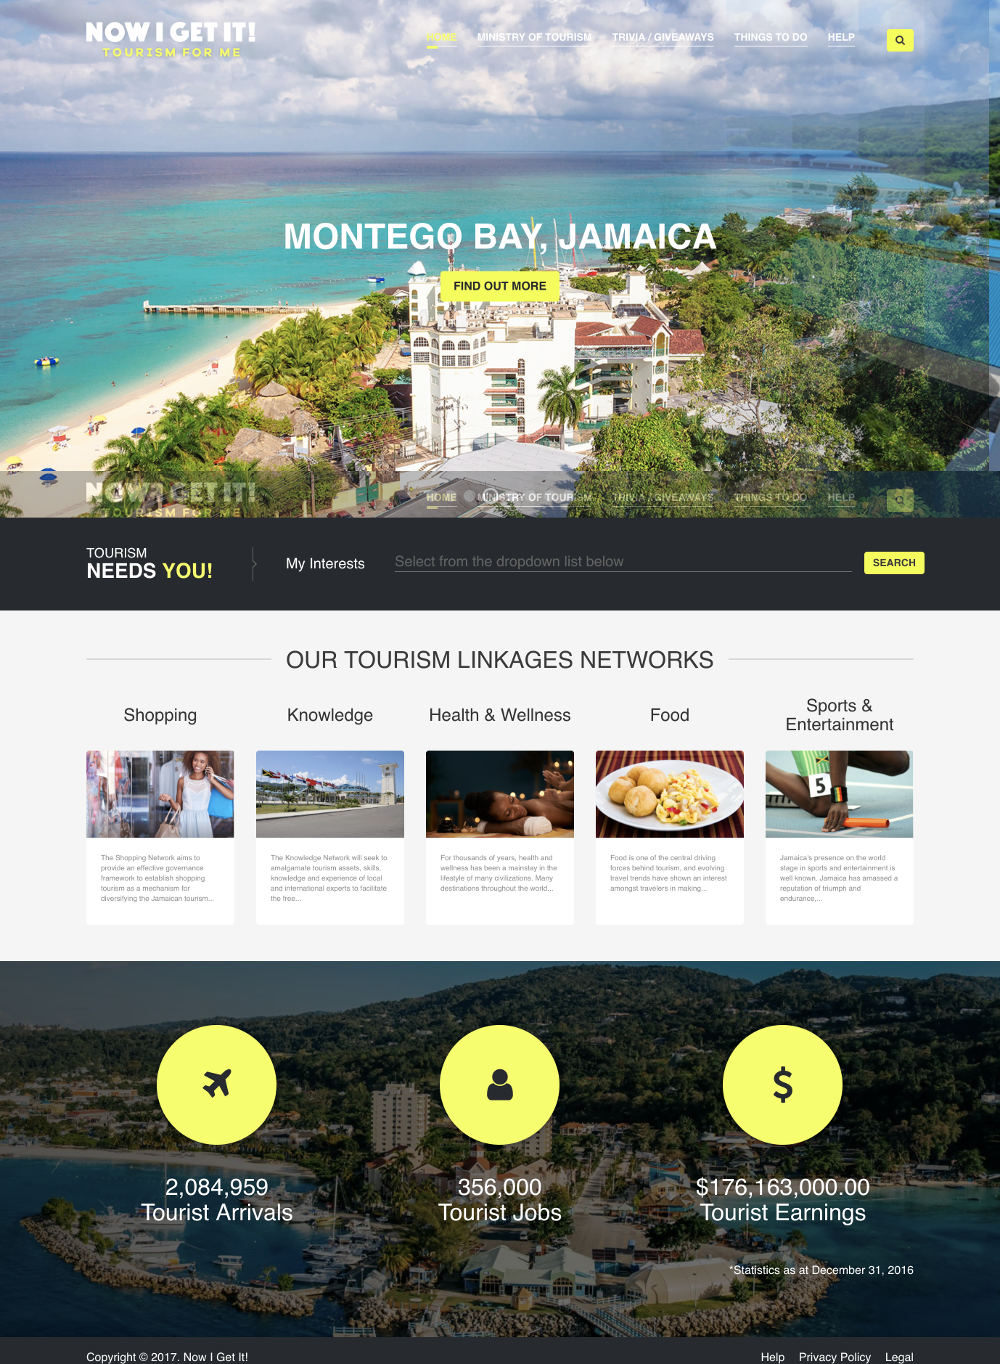 Ministry of Tourism Jamaica - Now I Get It Microsite